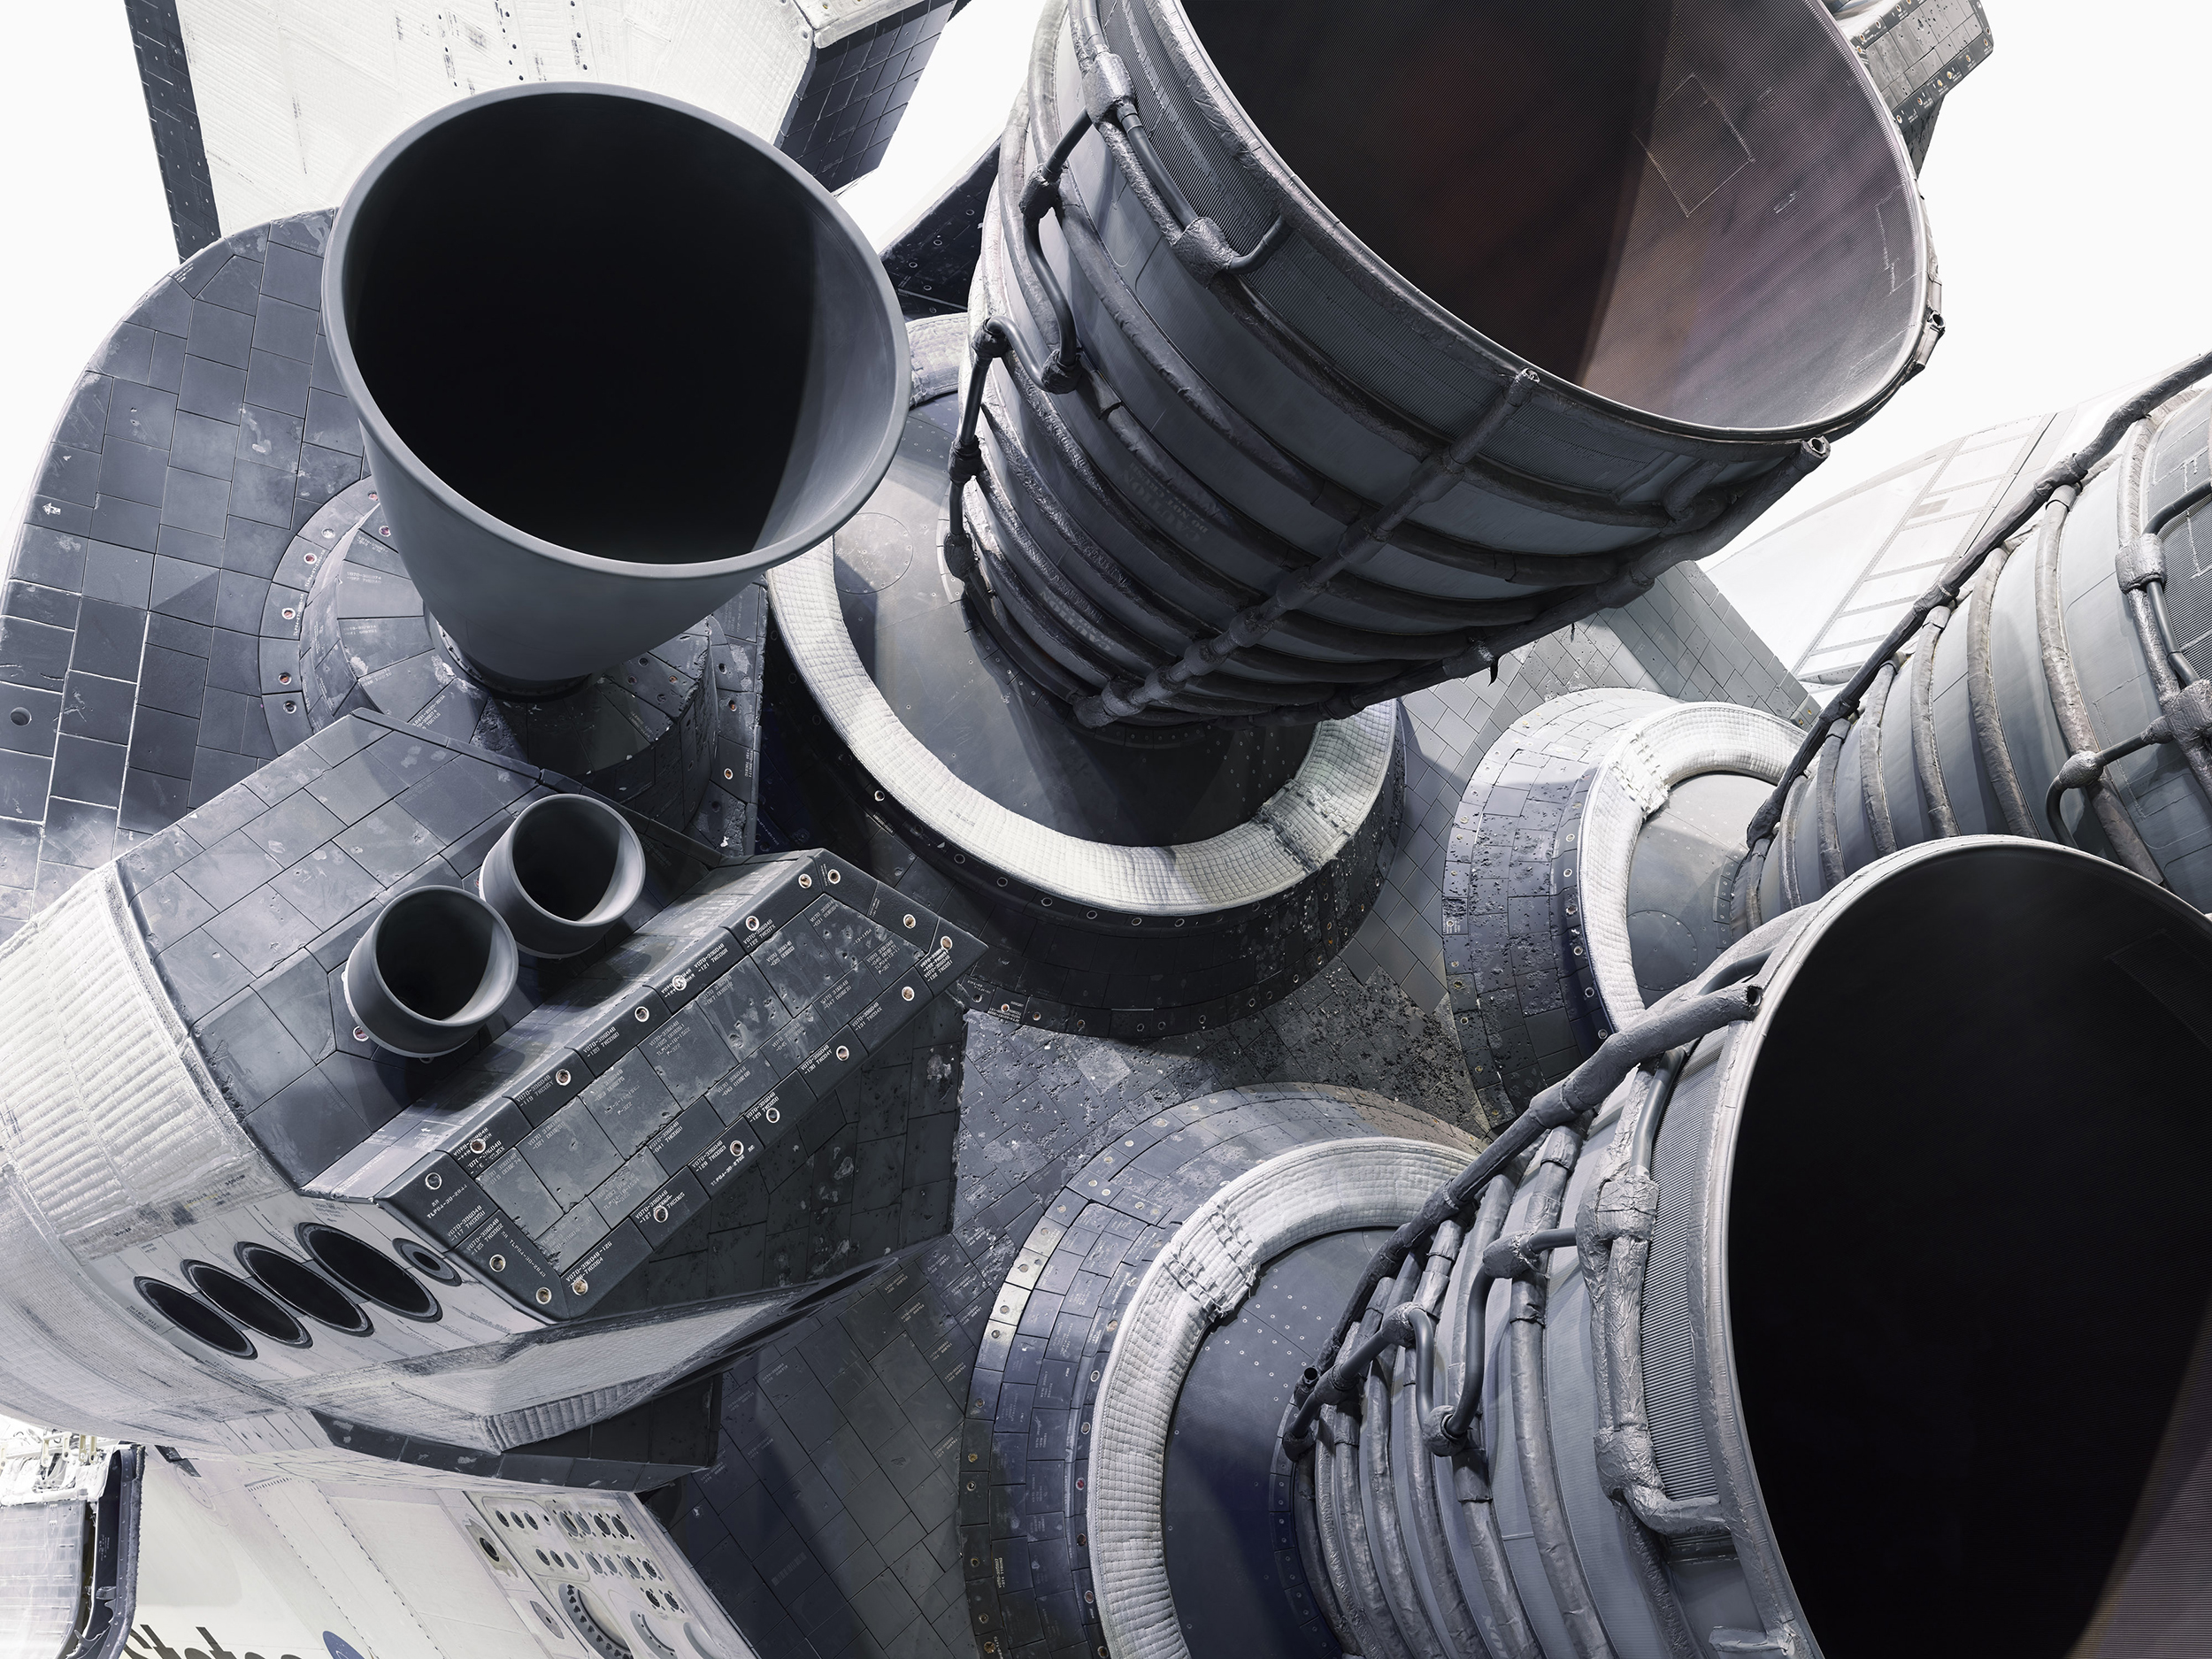 SPACE SHUTTLE ATLANTIS ENGINES - KENNEDY VISITOR CENTRE.jpg